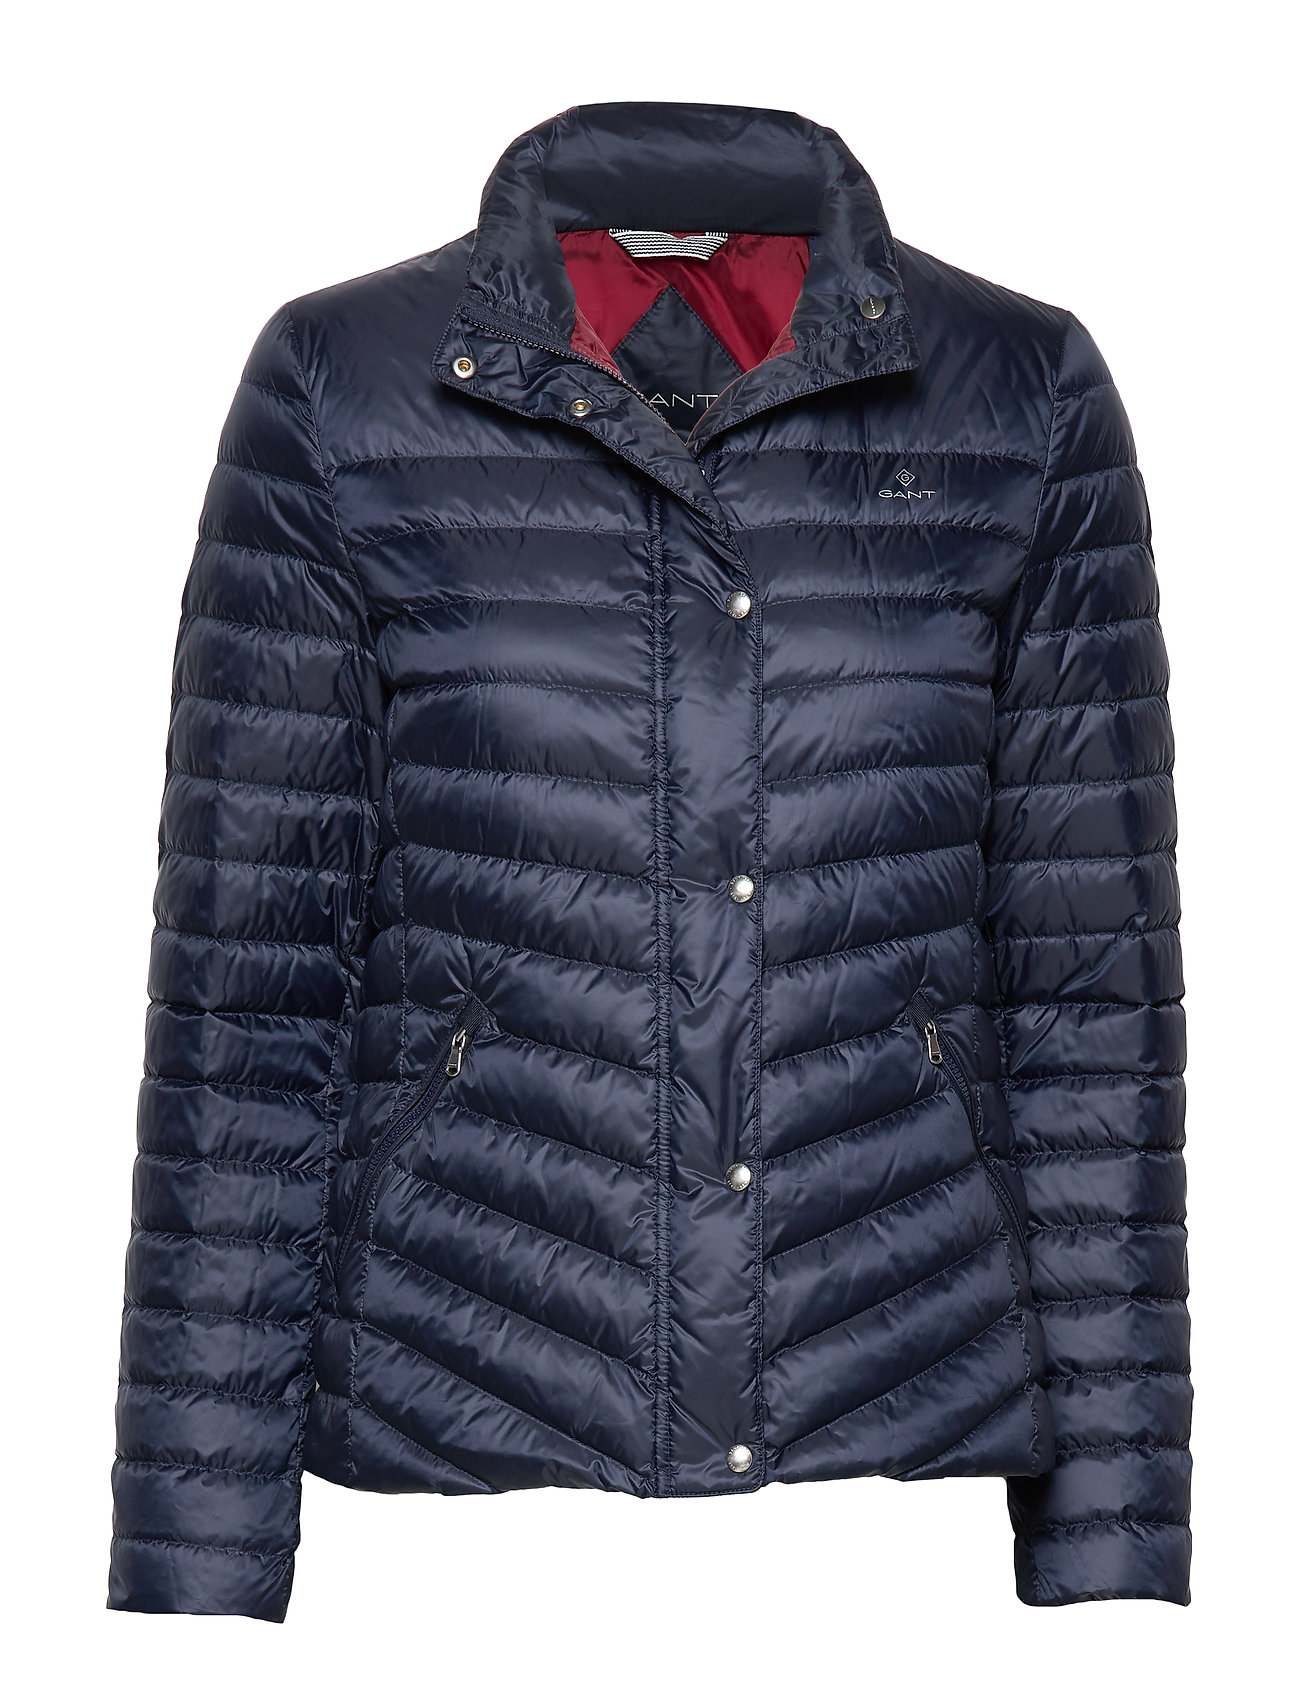 GANT D1. LIGHT DOWN JACKET - MARINE